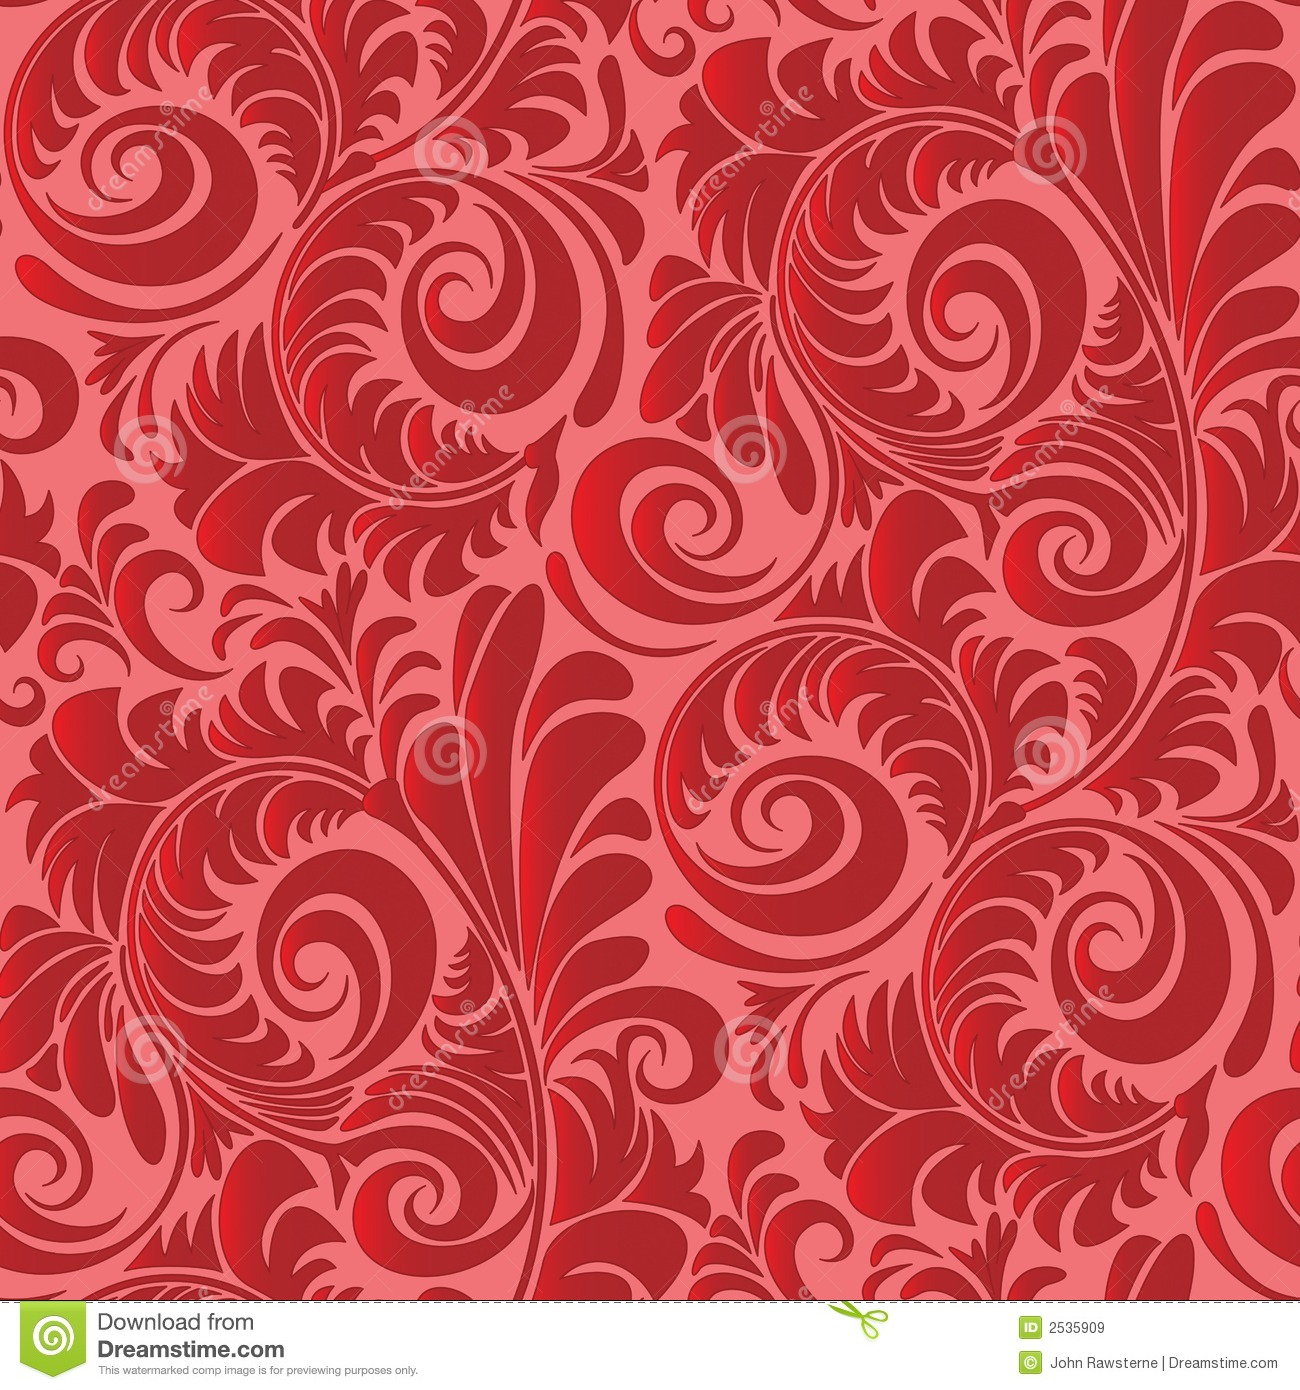 vintage repeating wallpaper - photo #18